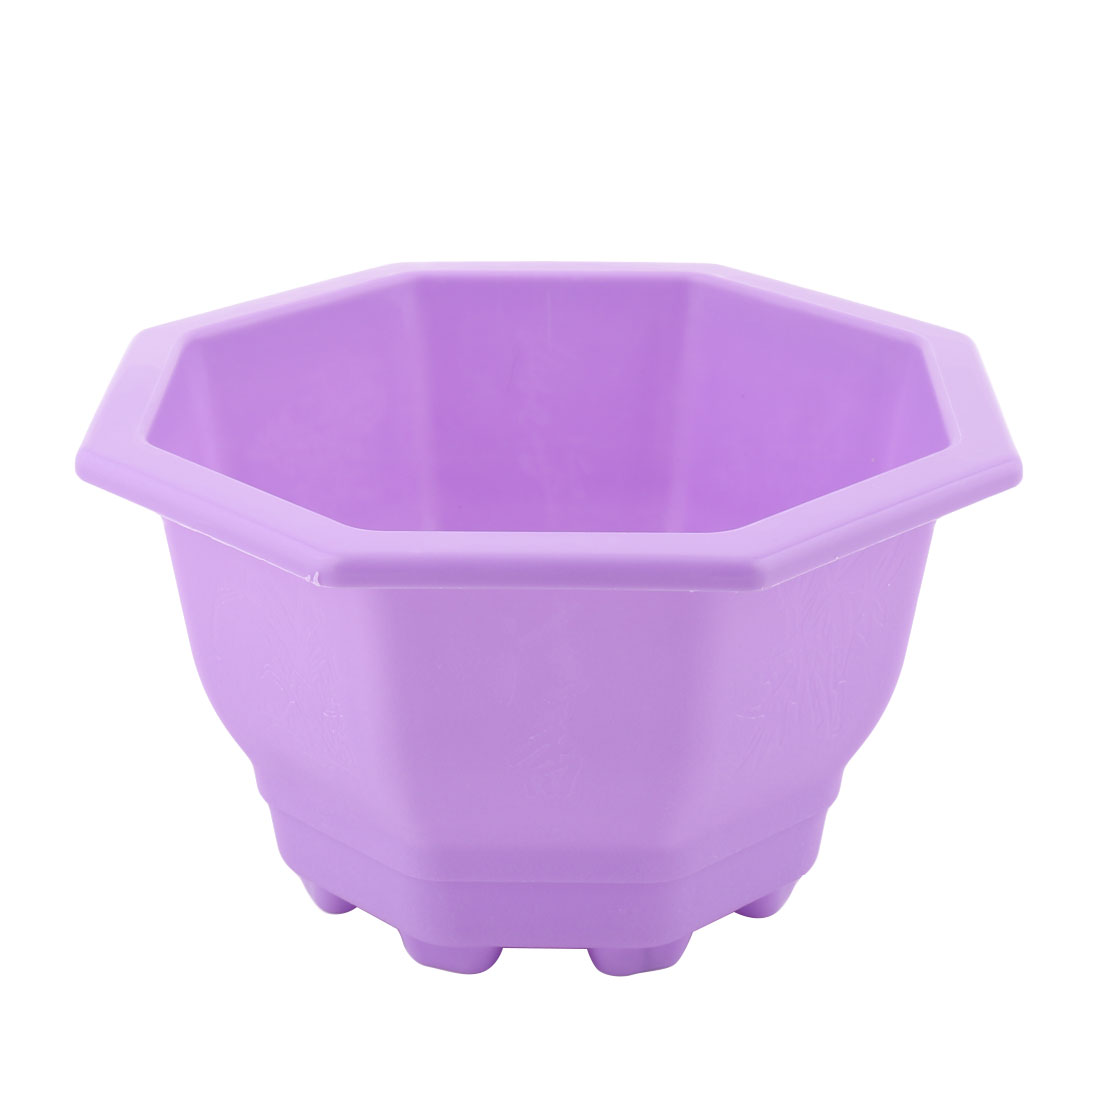 Home Office Garden Plastic Octagon Shaped Decoration Flower Plant Pot Planter Holder Purple